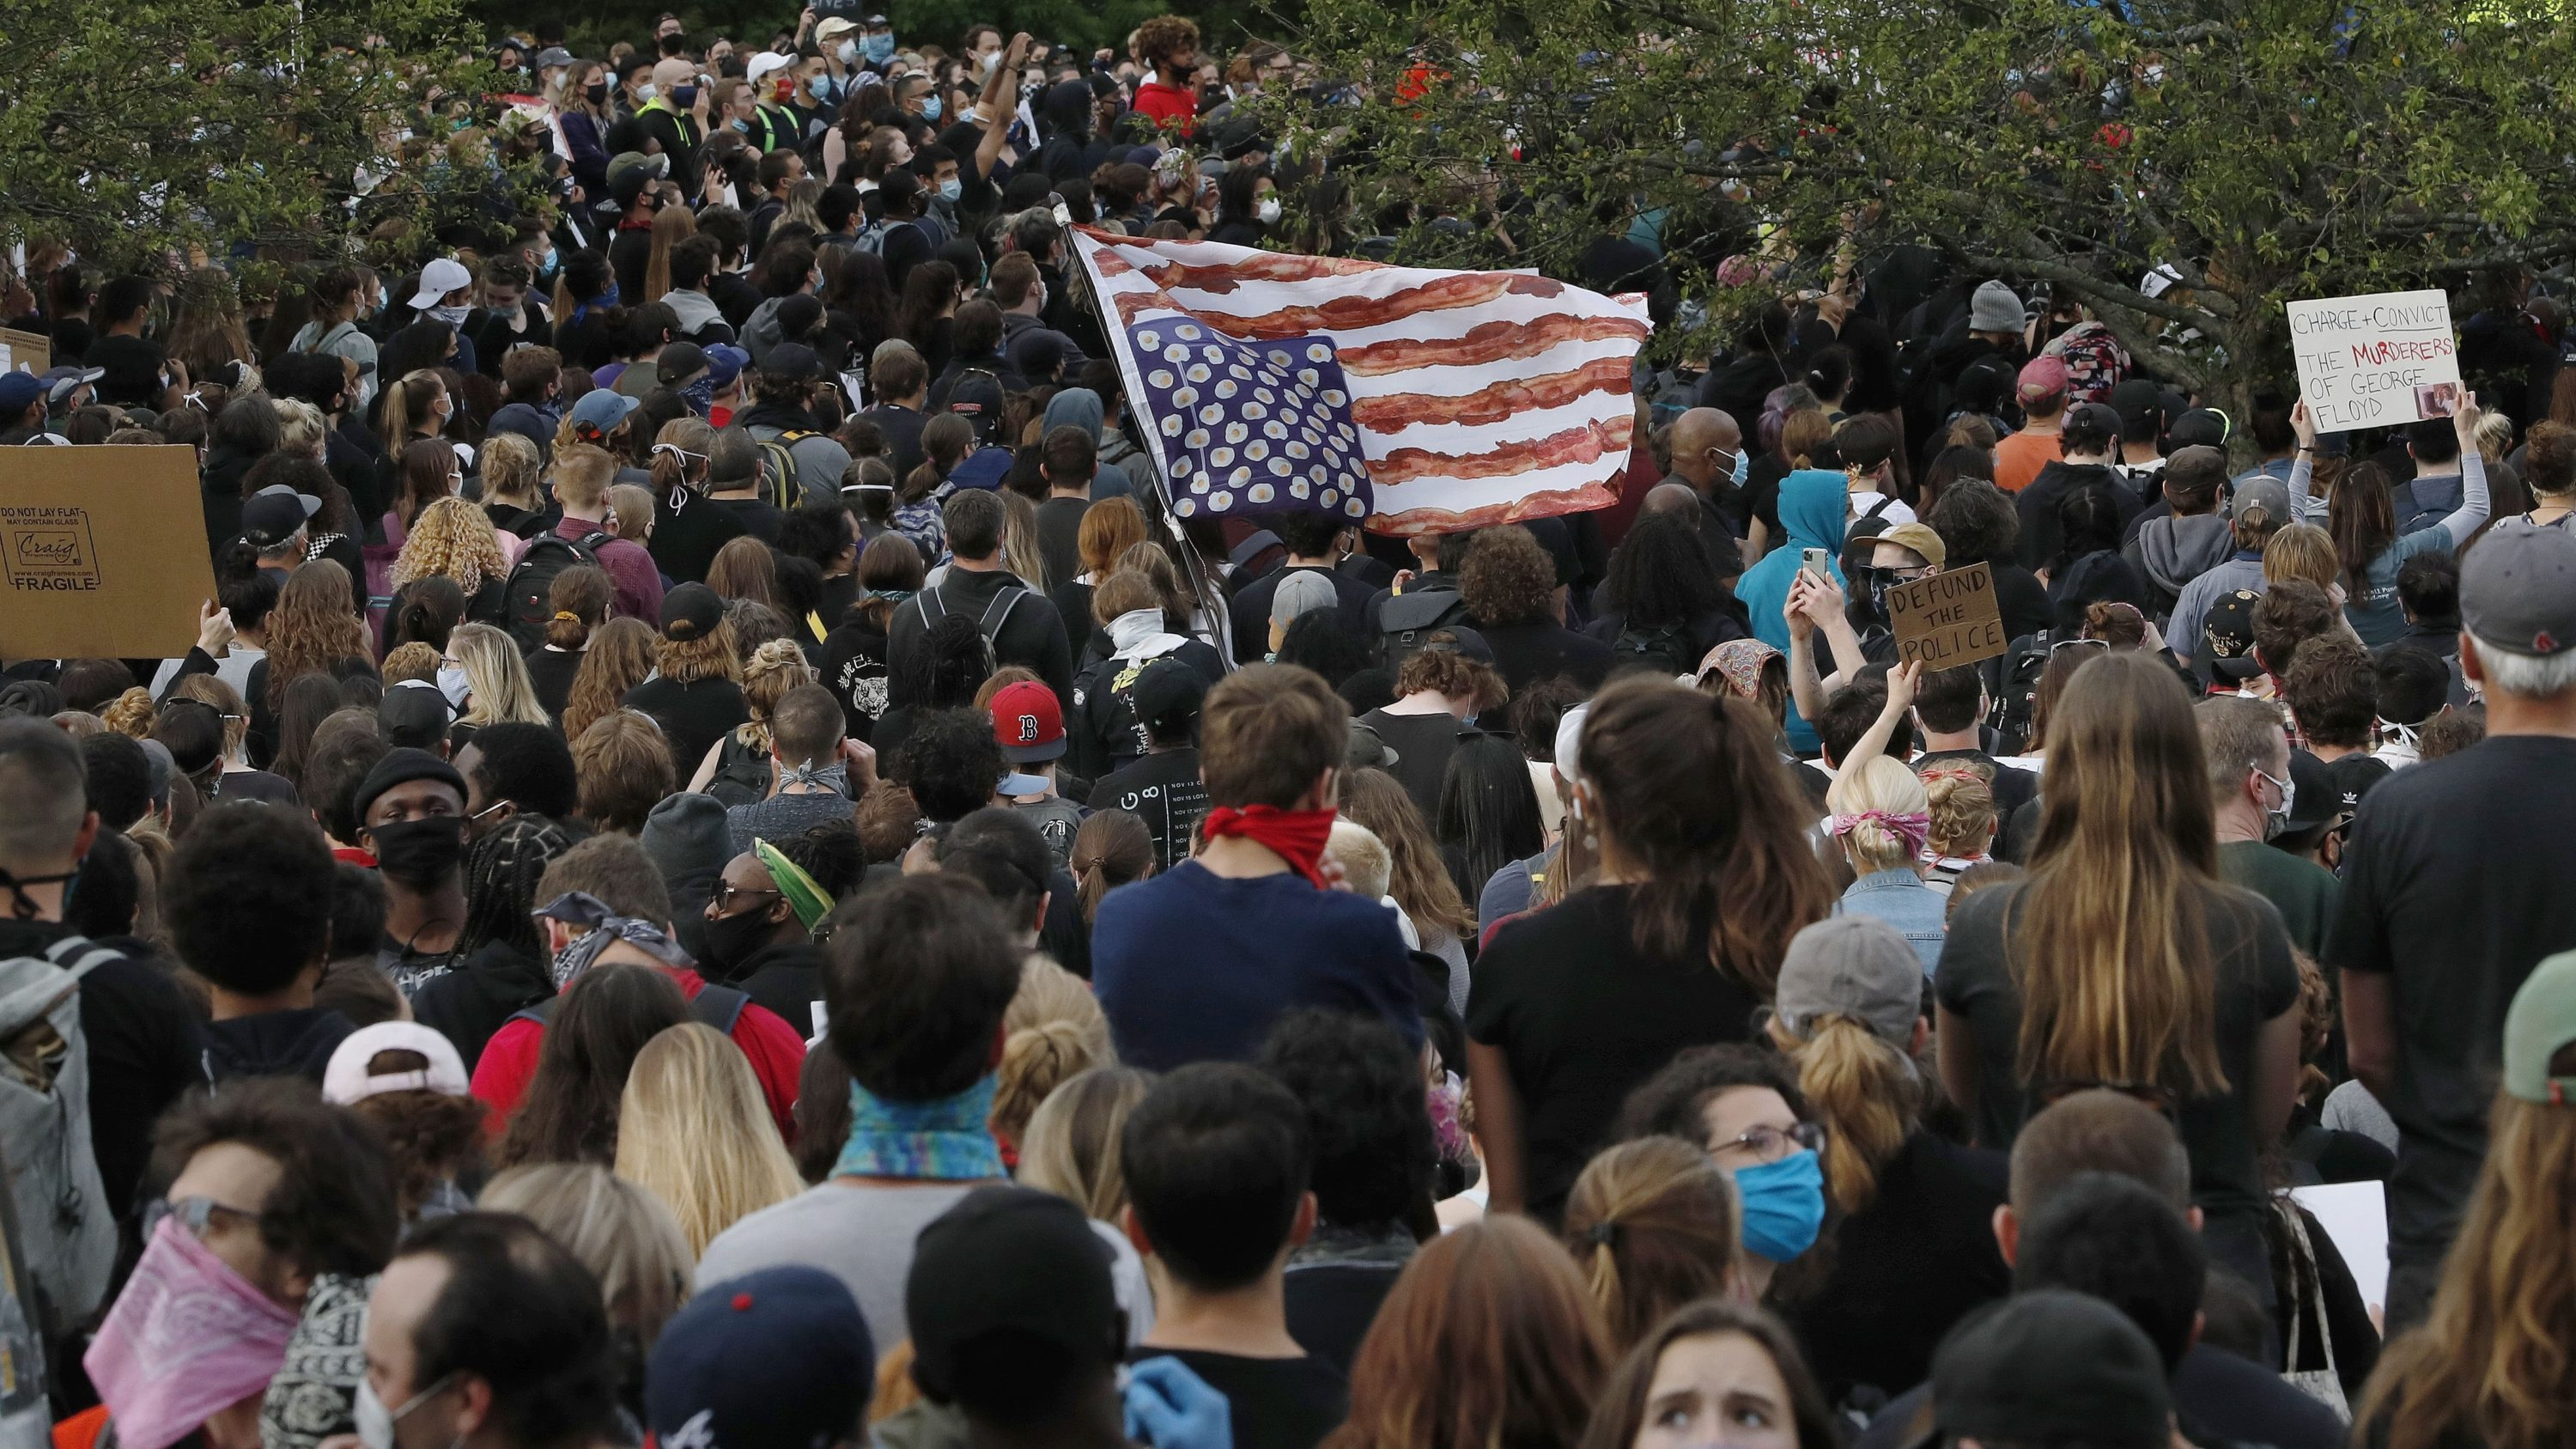 A stylized American flag is held upside down among hundreds gathered in Boston on Tuesday to protest against police brutality following the death of George Floyd. (Charles Krupa/AP)